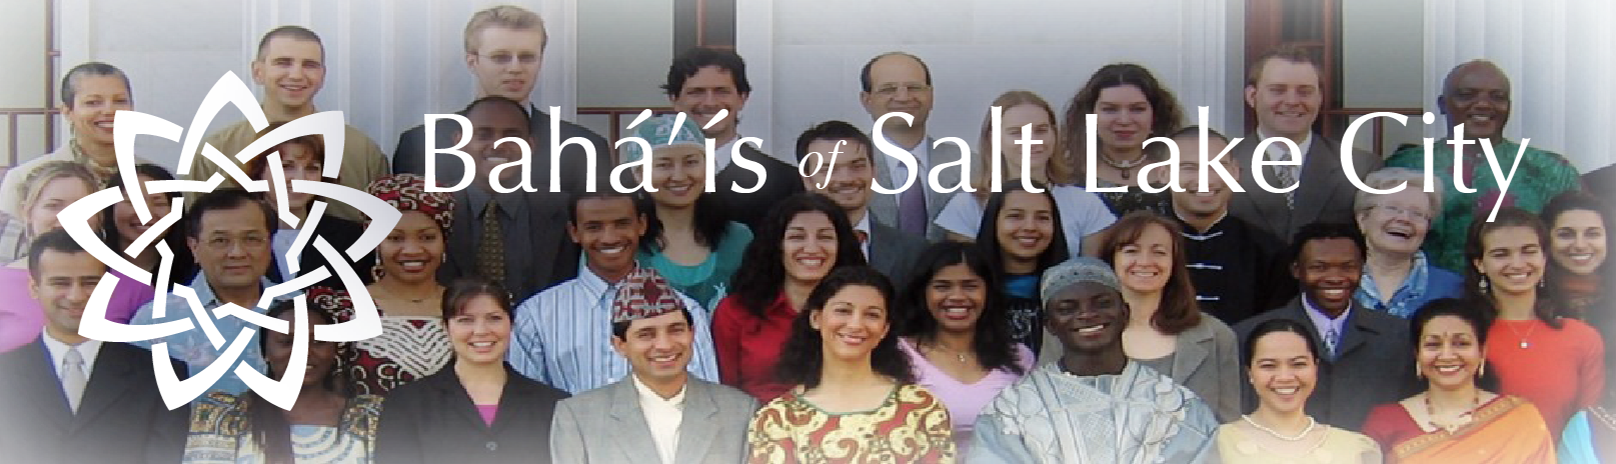 Bahá'í' Faith of Utah, Bahá'í's of  Greater Salt Lake , Bahá'í's of Salt Lake City, Utah Bahá'í's, Utah Bahá'í' Center, Bahá'í' Beliefs